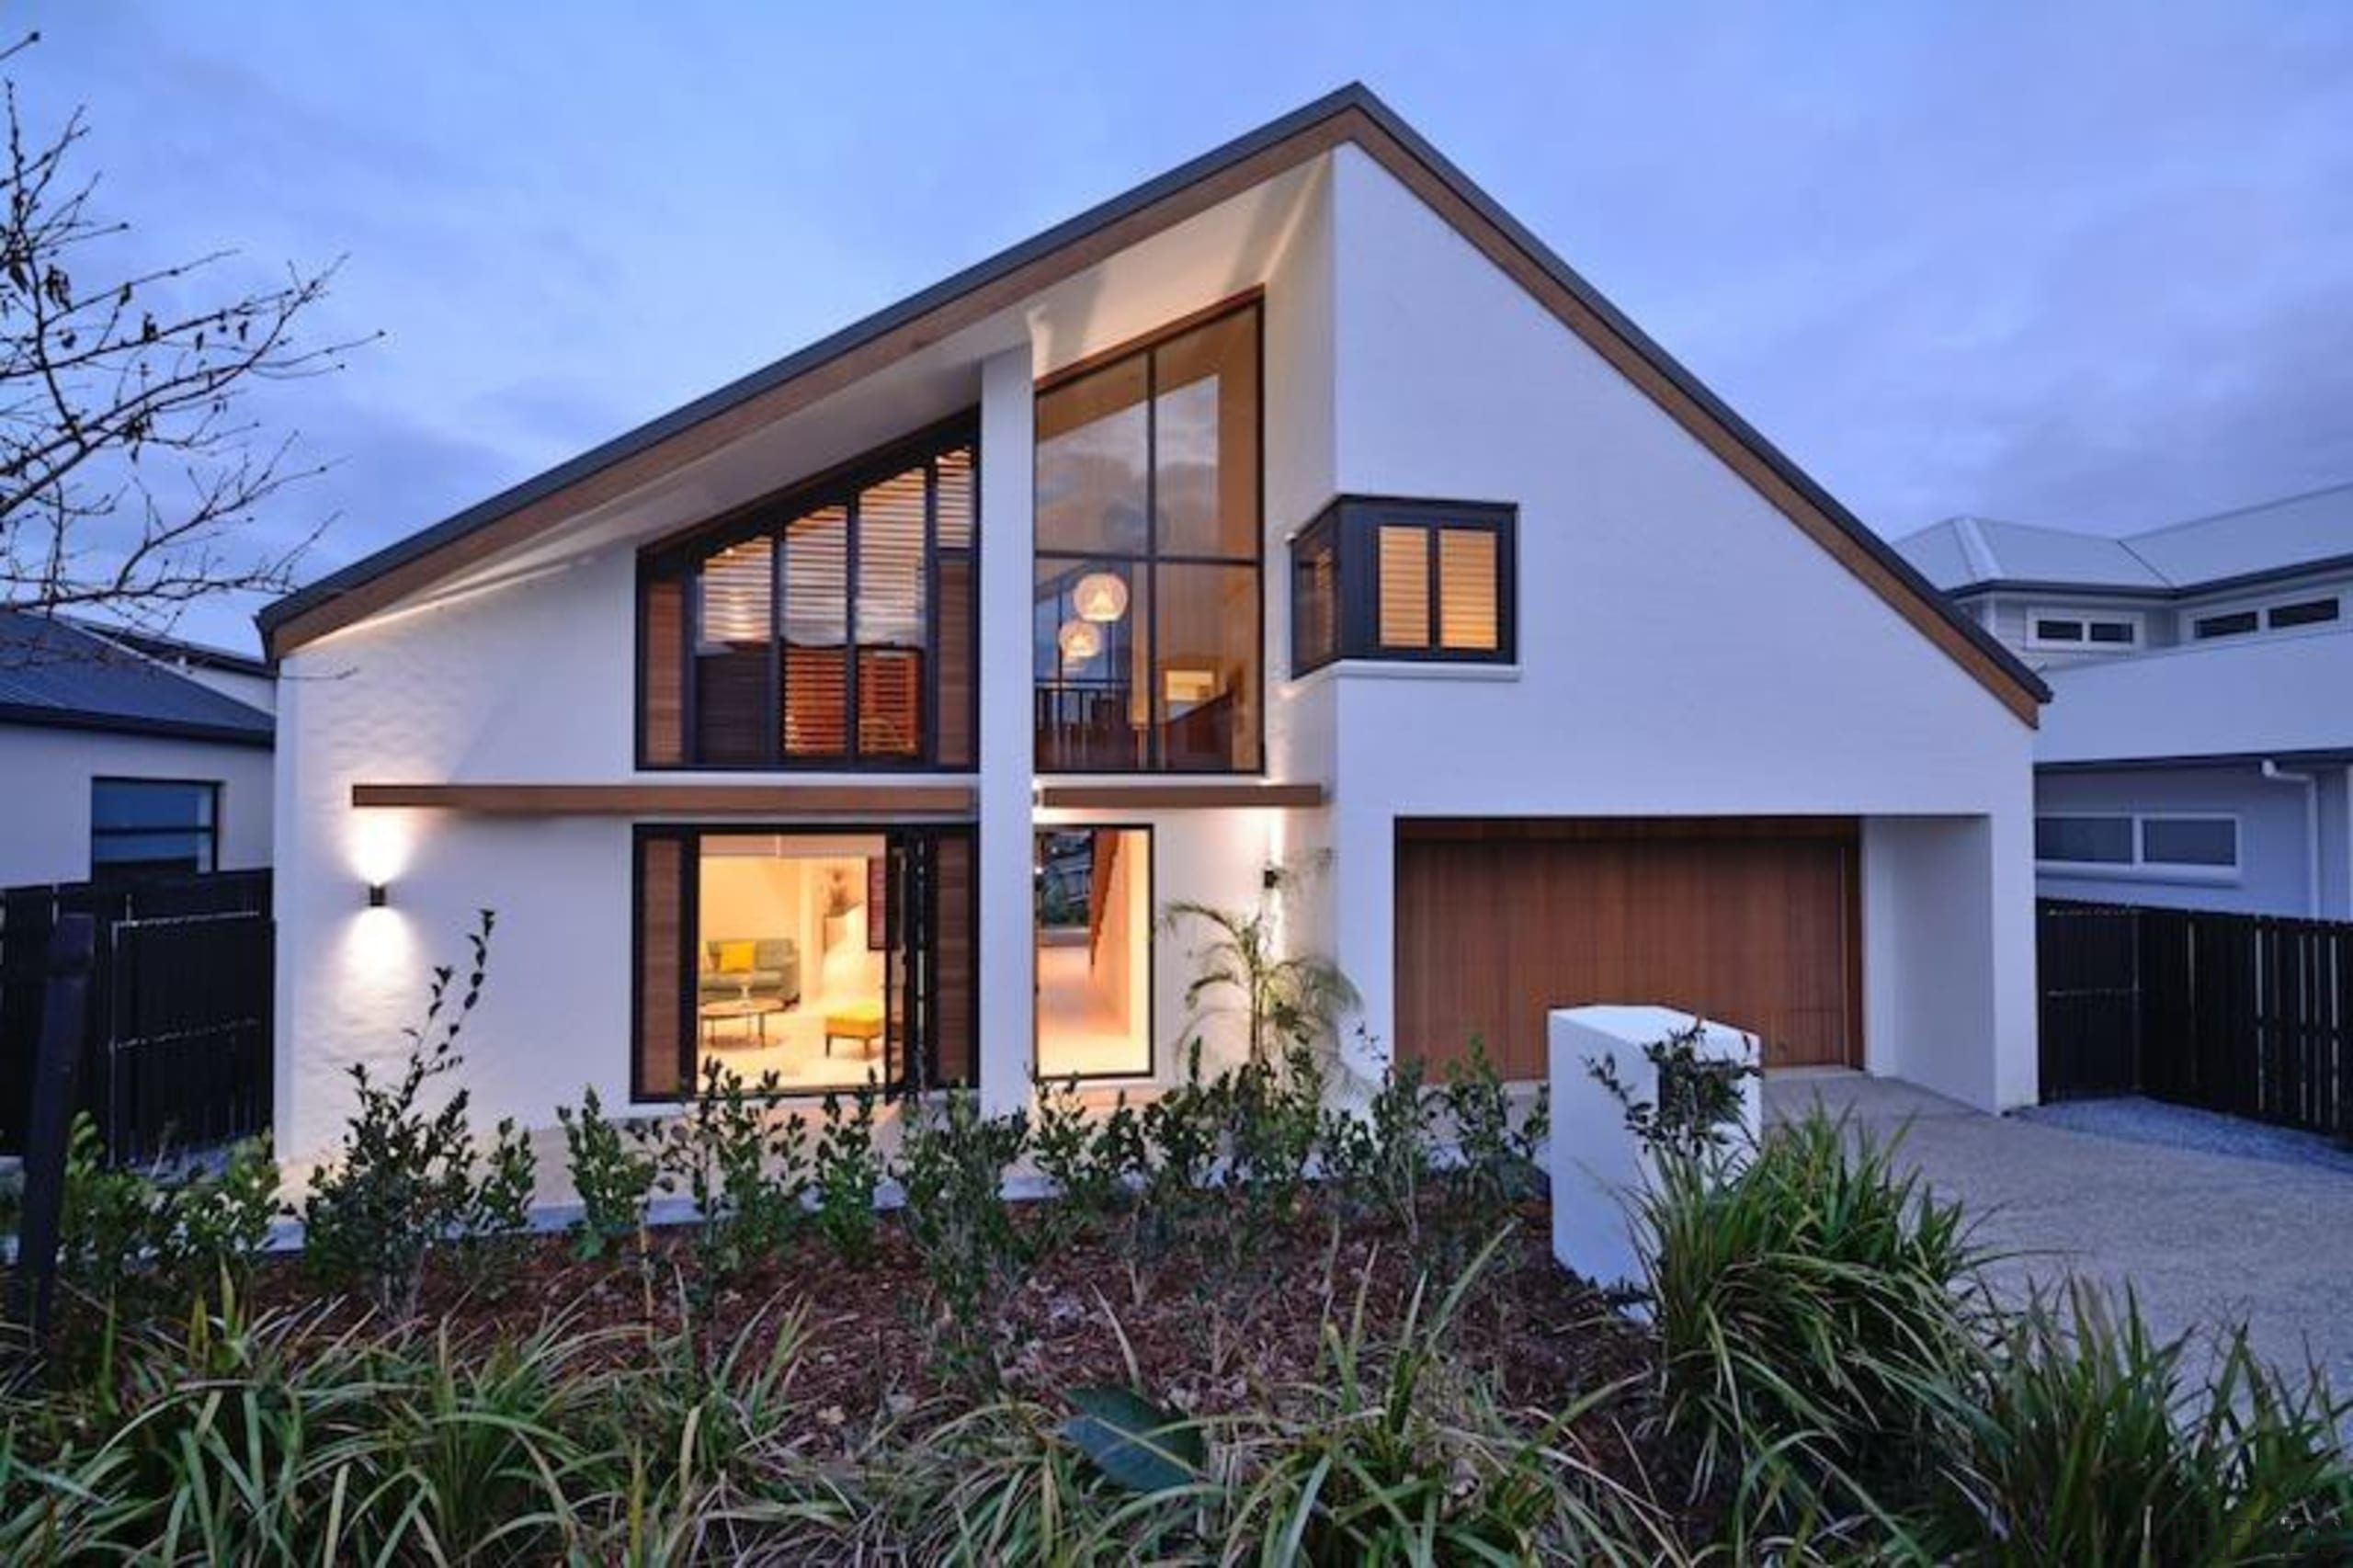 TIDA New Zealand Architect-designed Homes - 2015 Trends architecture, building, cottage, elevation, estate, facade, farmhouse, home, house, property, real estate, residential area, roof, siding, window, teal